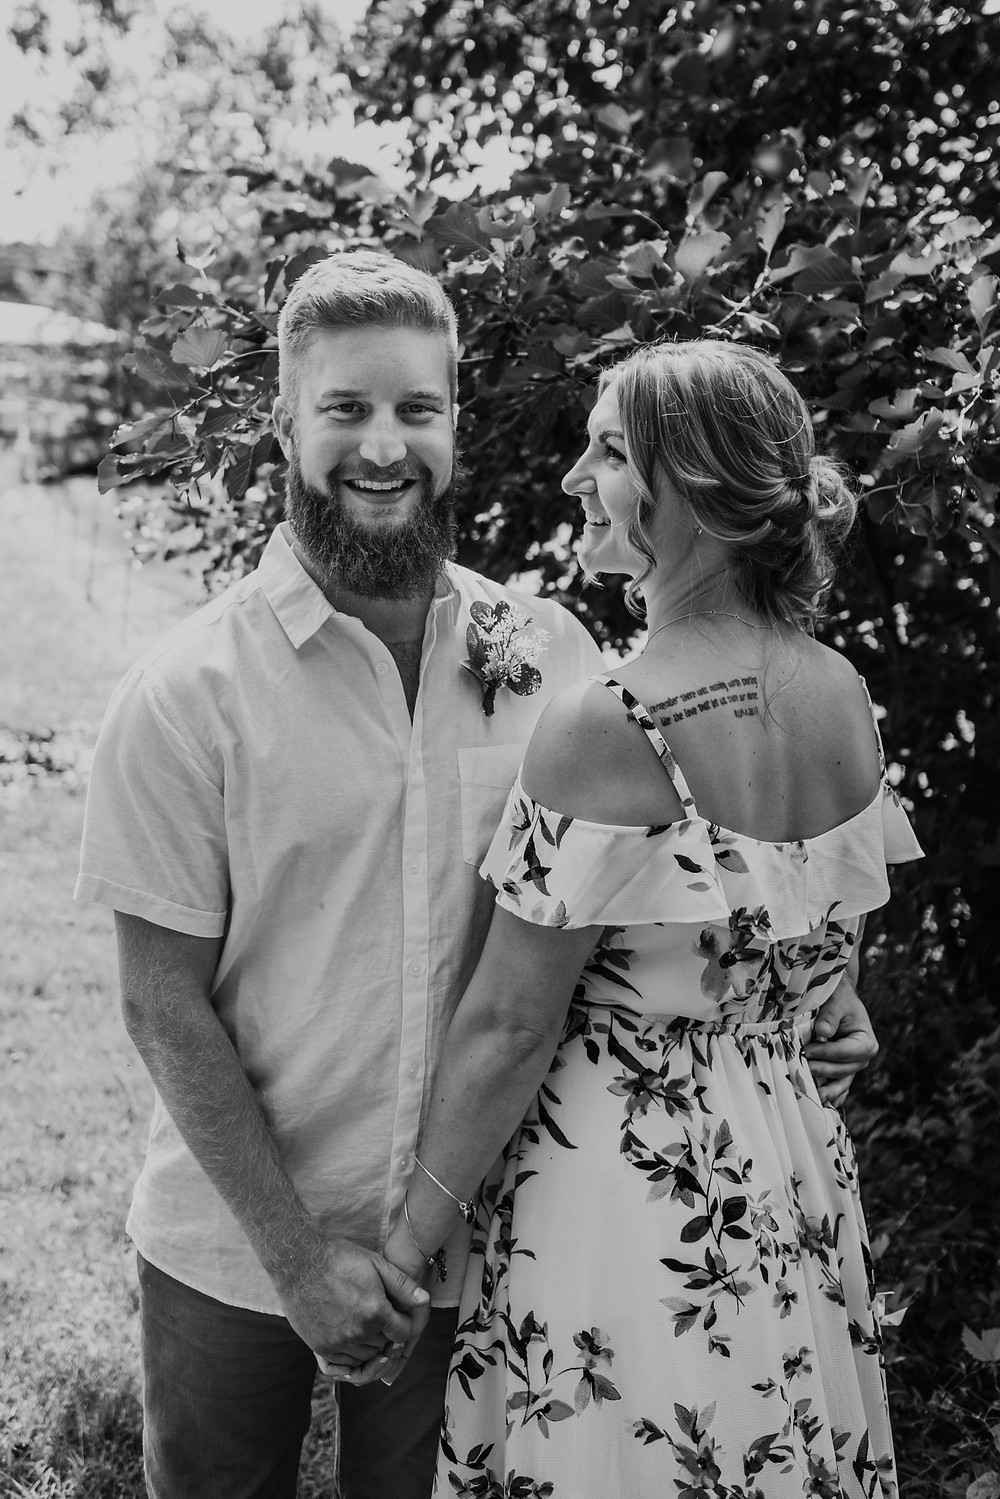 Couple at backyard wedding in Metro Detroit. Photographed by Nicole Leanne Photography.